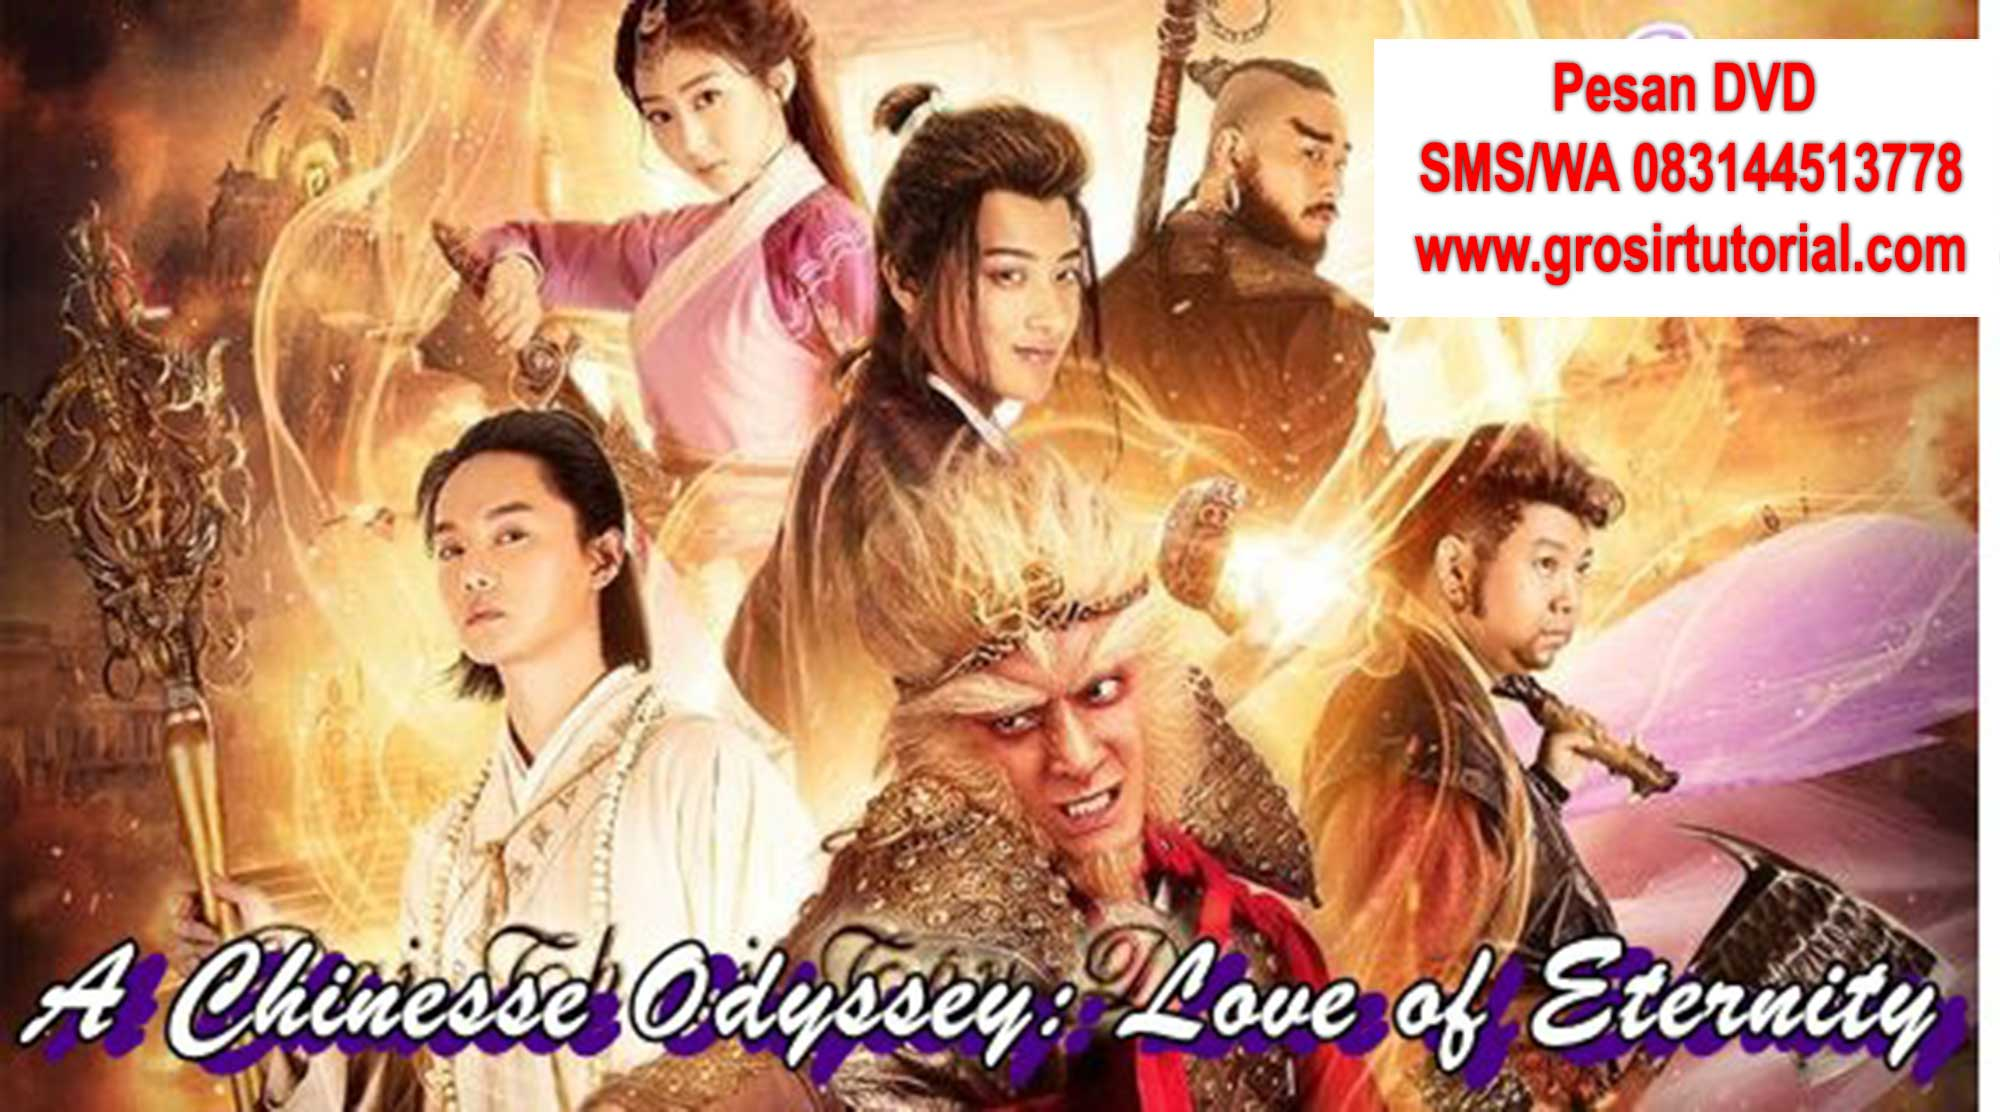 cari-DVD-mandarin-A-Chinese-Oddyssey-Love-of-Eternity